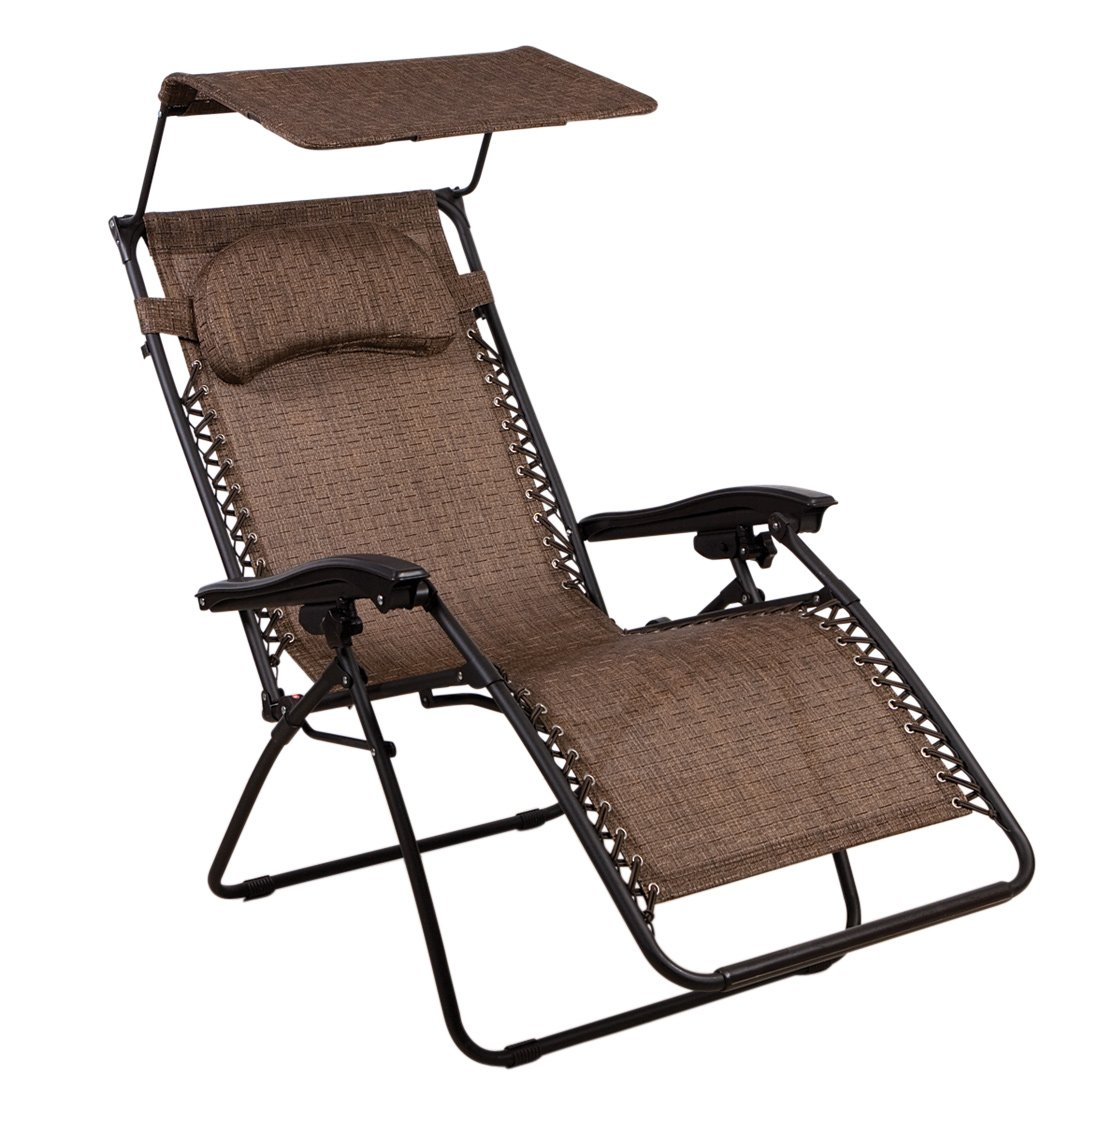 Oversized Zero Gravity Chair With Canopy Oversized Zero Gravity Chair Duo To Suit All Sizes